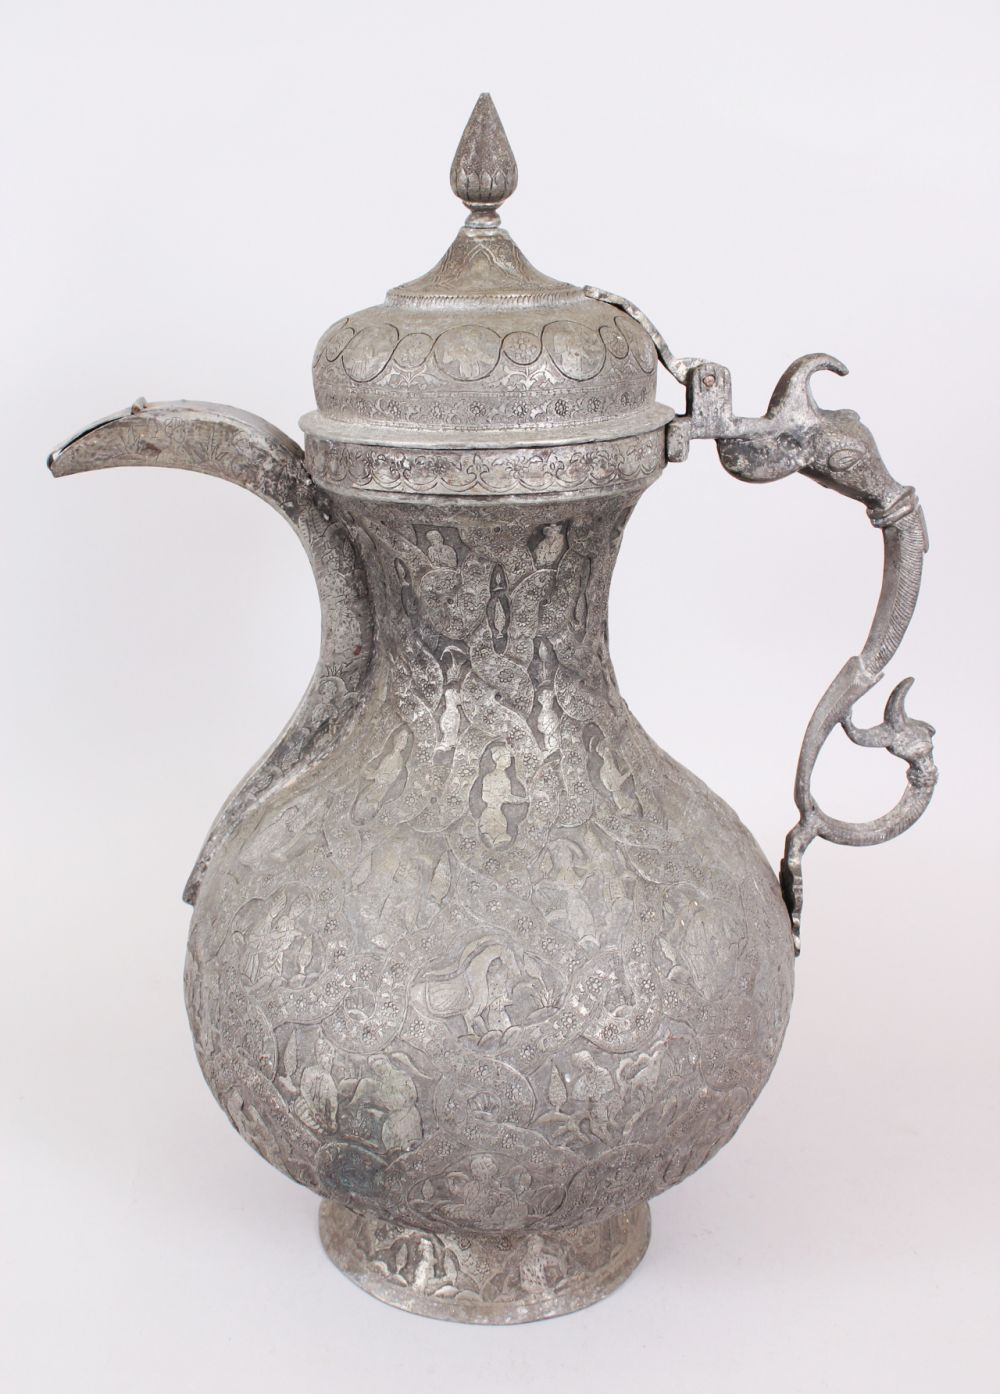 Lot 25 - A GOOD 18TH-19TH CENTURY PERSIAN TINNED COPPER JUG with figured decoration.